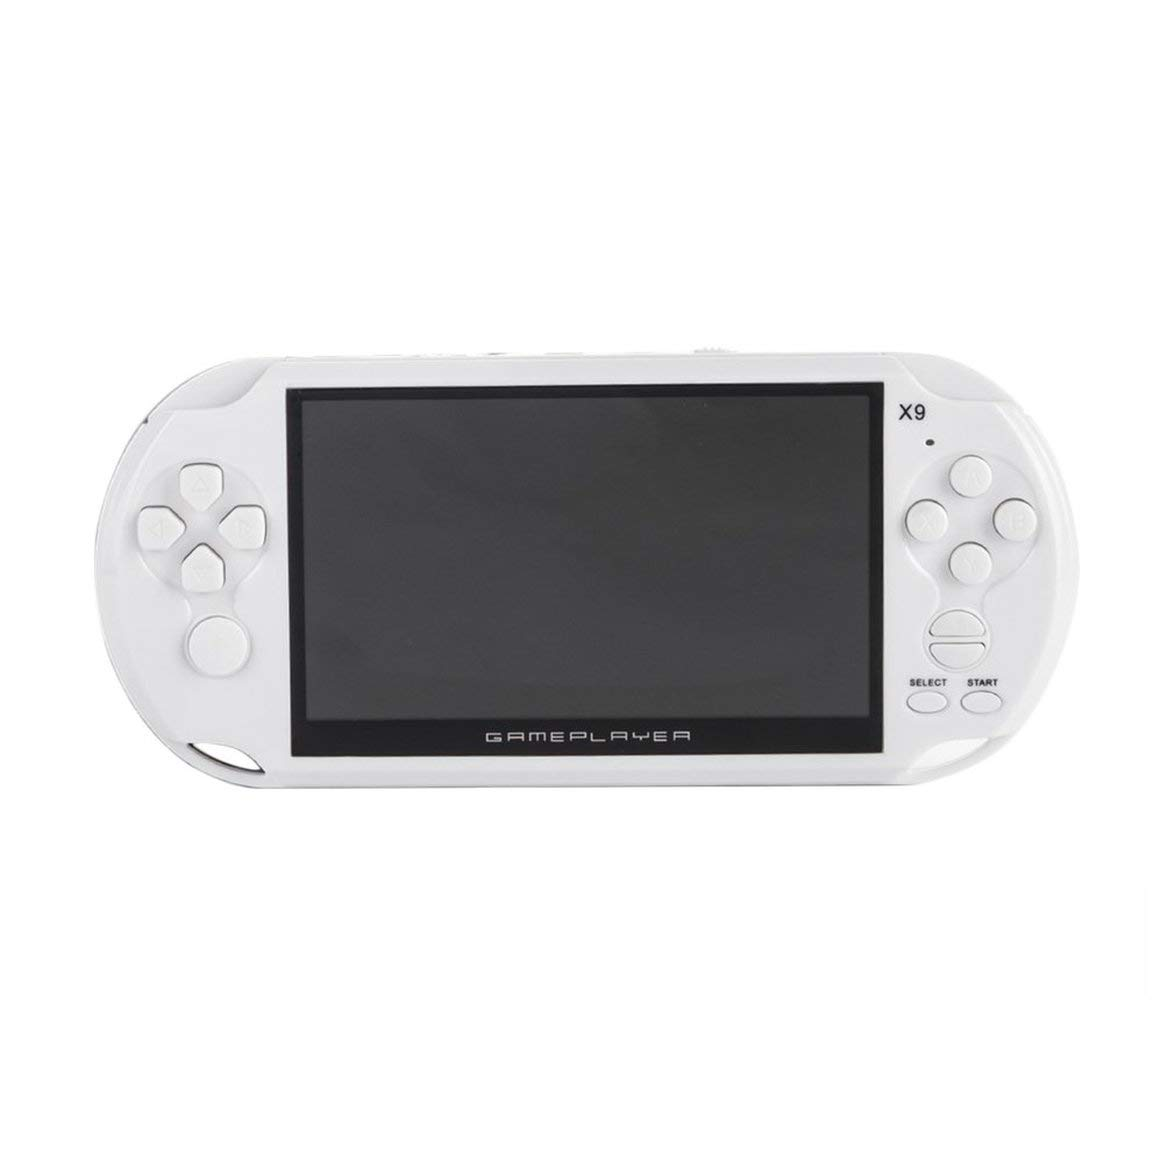 Pandamama Portable Size 5.0 Inch Large Screen 8GB Game Console Handheld Game Player MP3 Player Gamepad with Classic Games by Pandamama (Image #2)